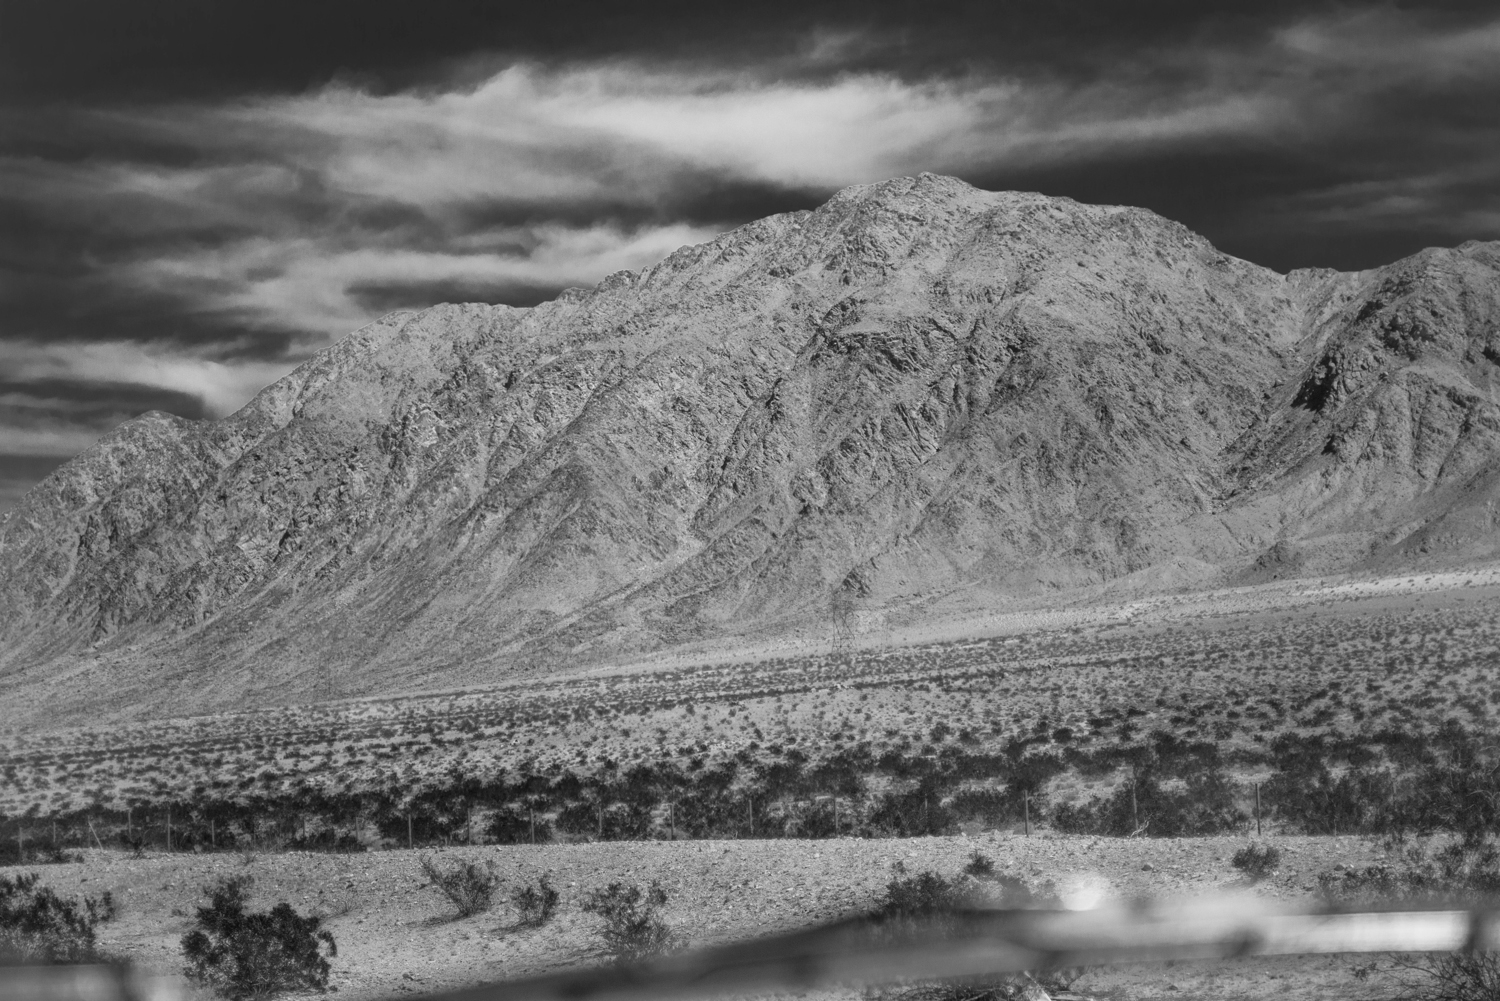 Nevada through windshield, © Robert Welkie 2016